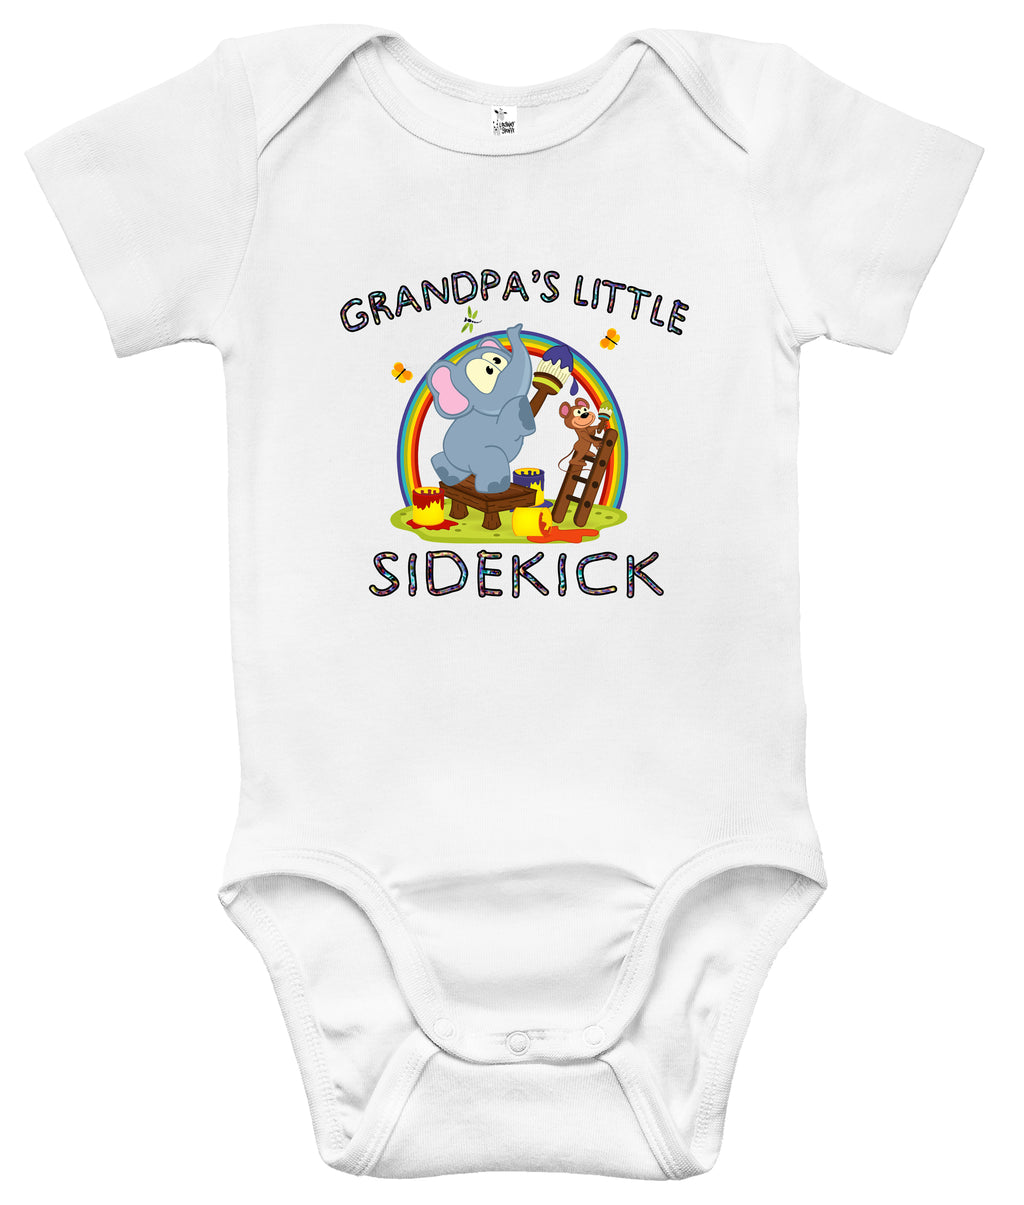 Baby Bodysuit - Grandpa's Little Sidekick